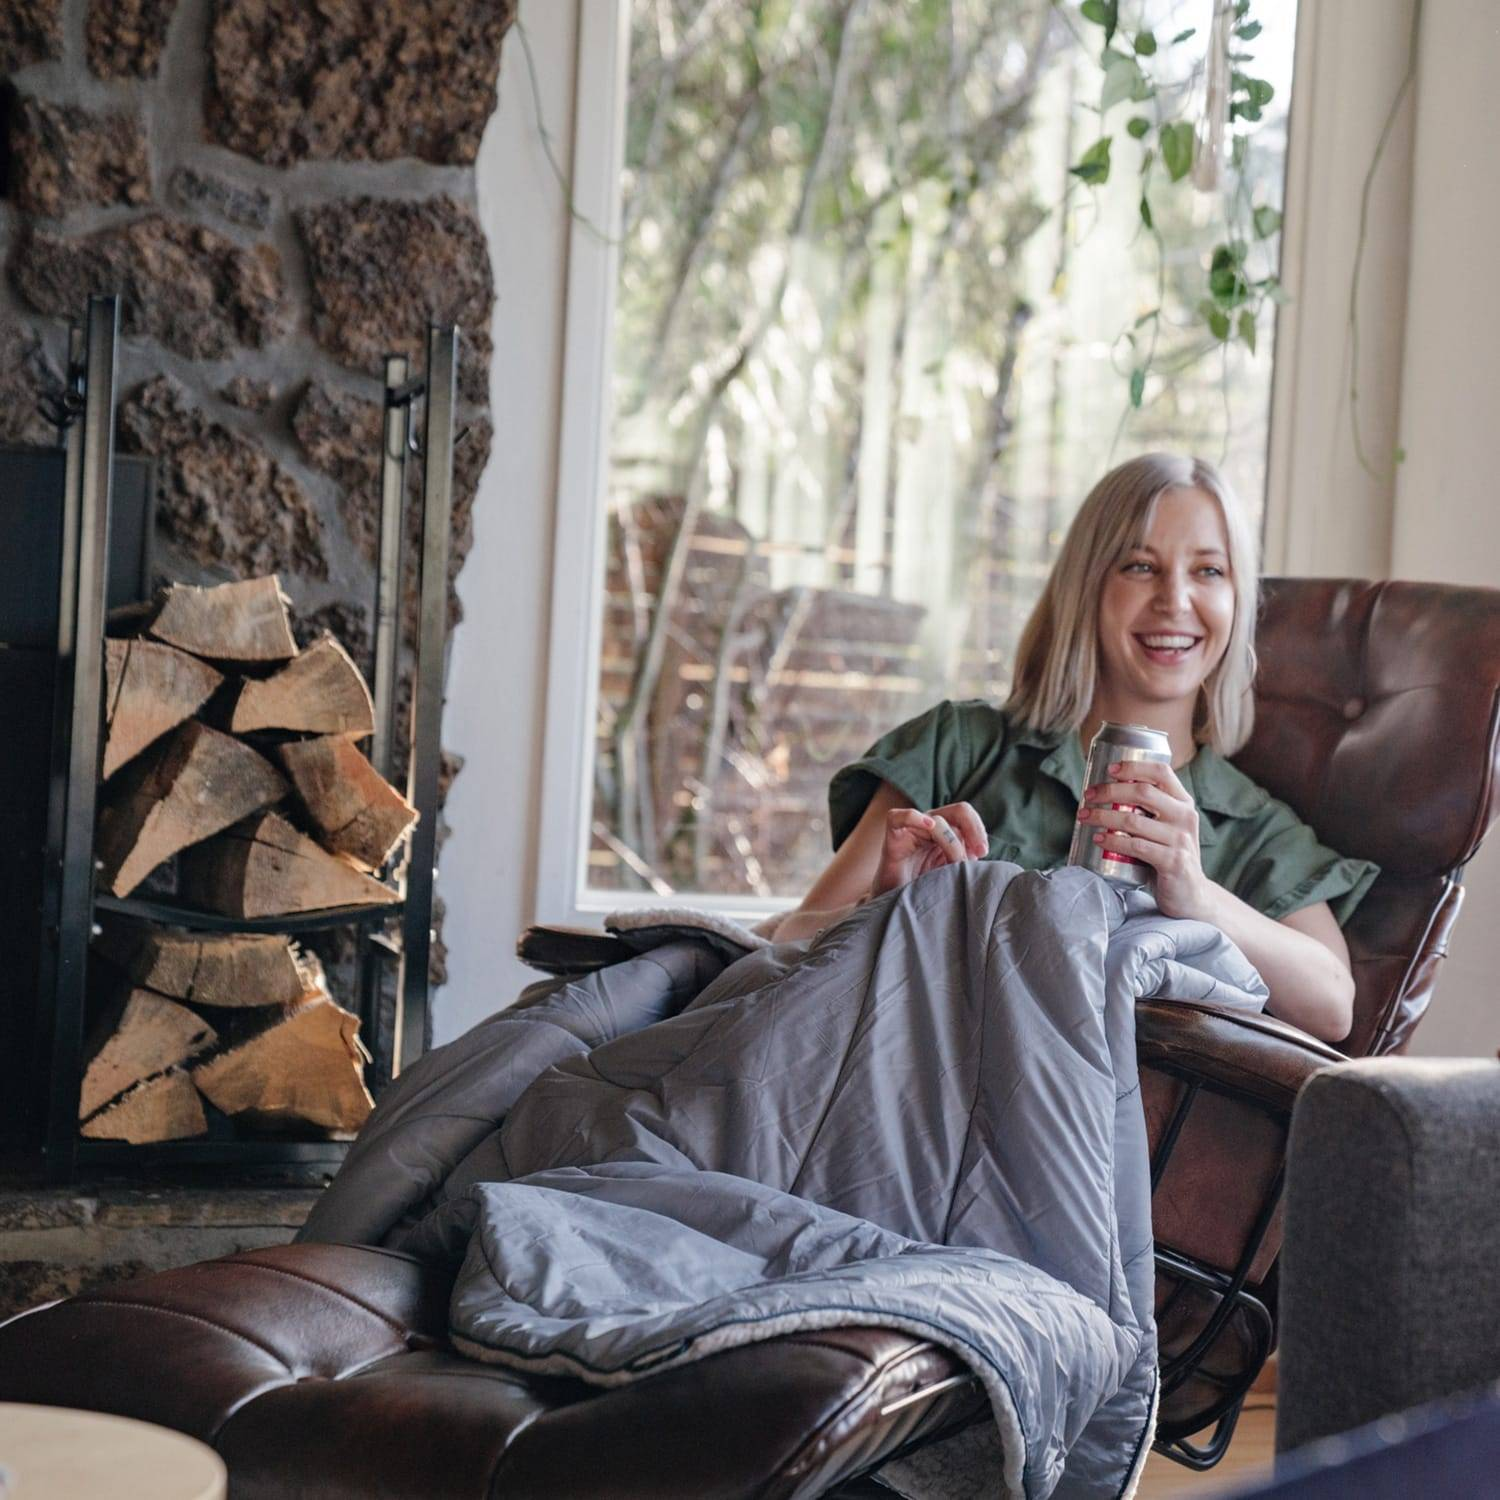 Woman under a throw blanket drinking a beer on a chair